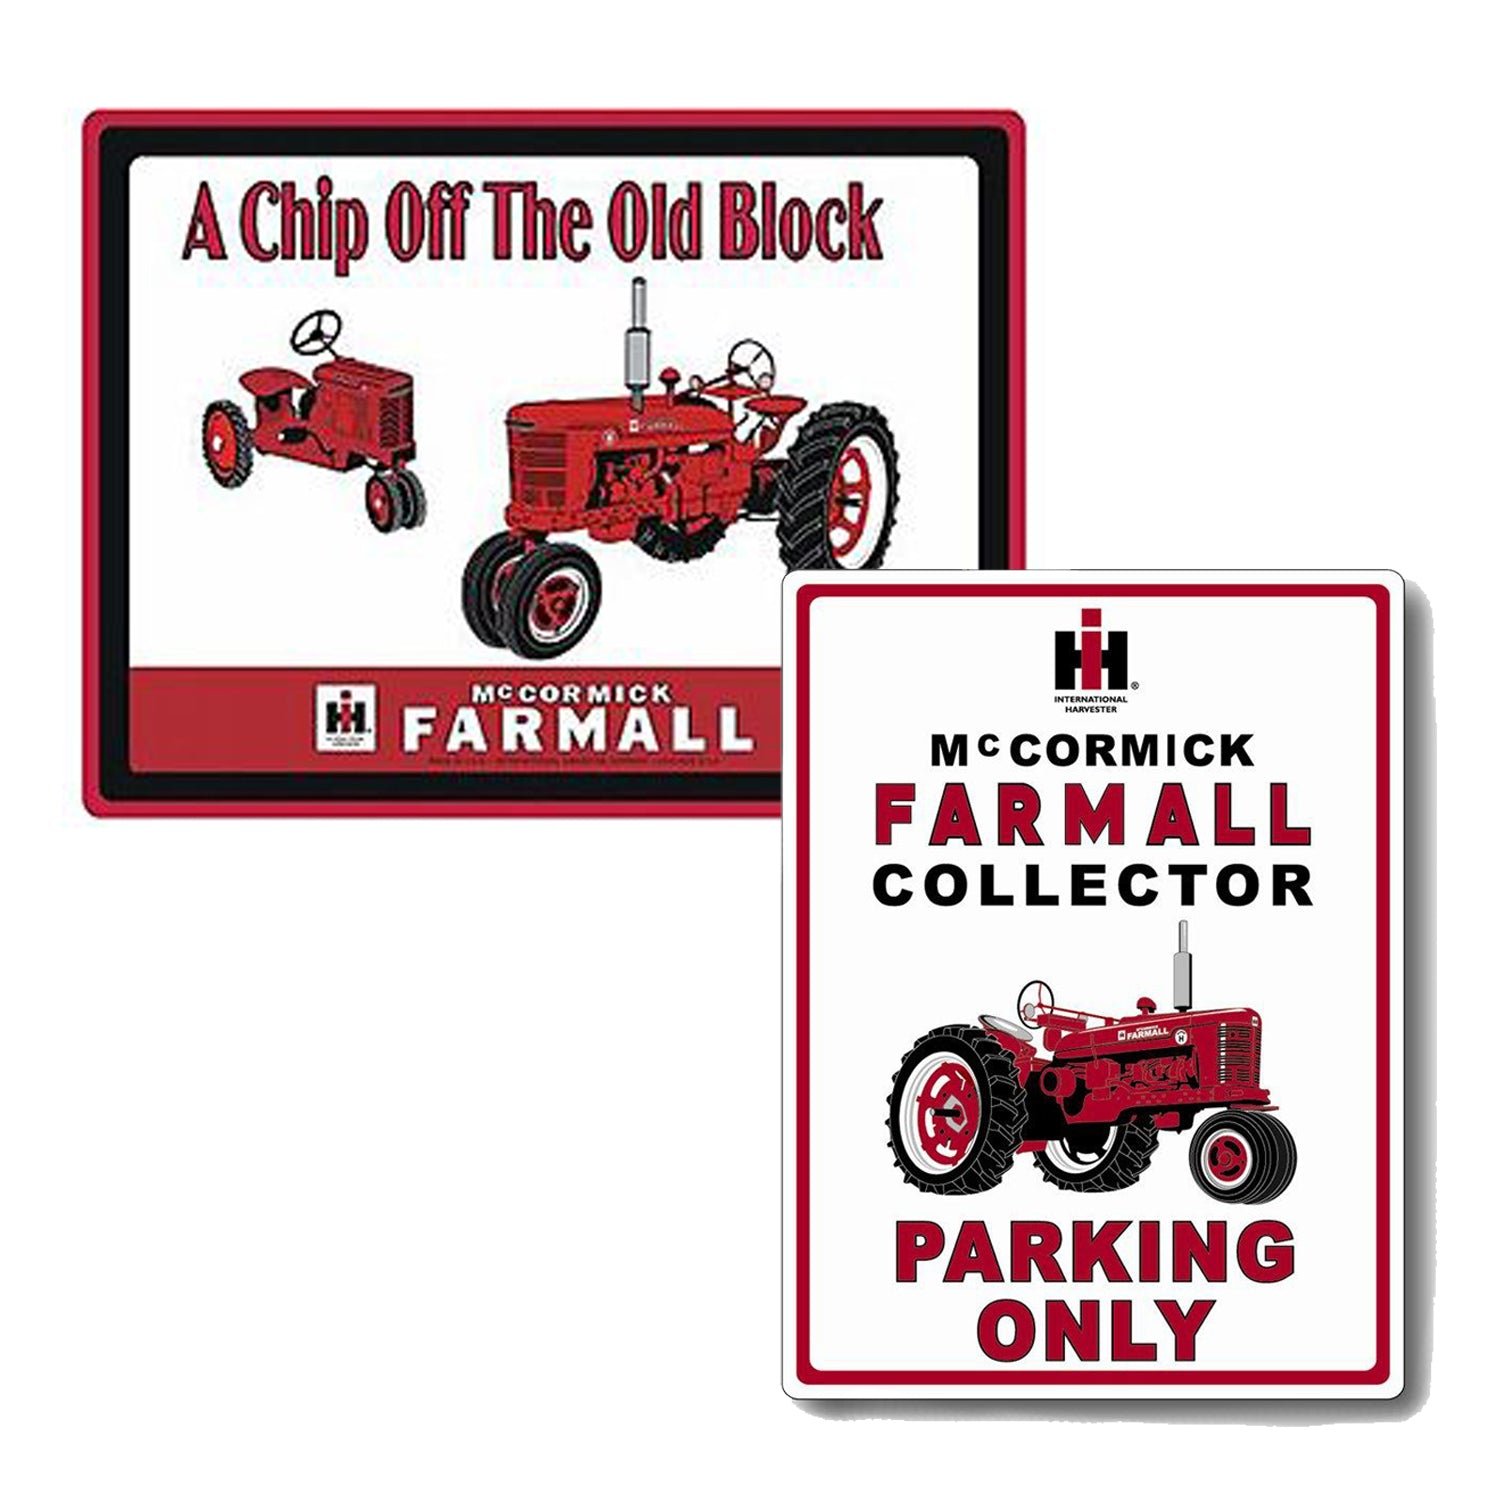 Mens Leather Bi-Fold Wallet with IH FARMALL TRACTOR Image *Great Gift*